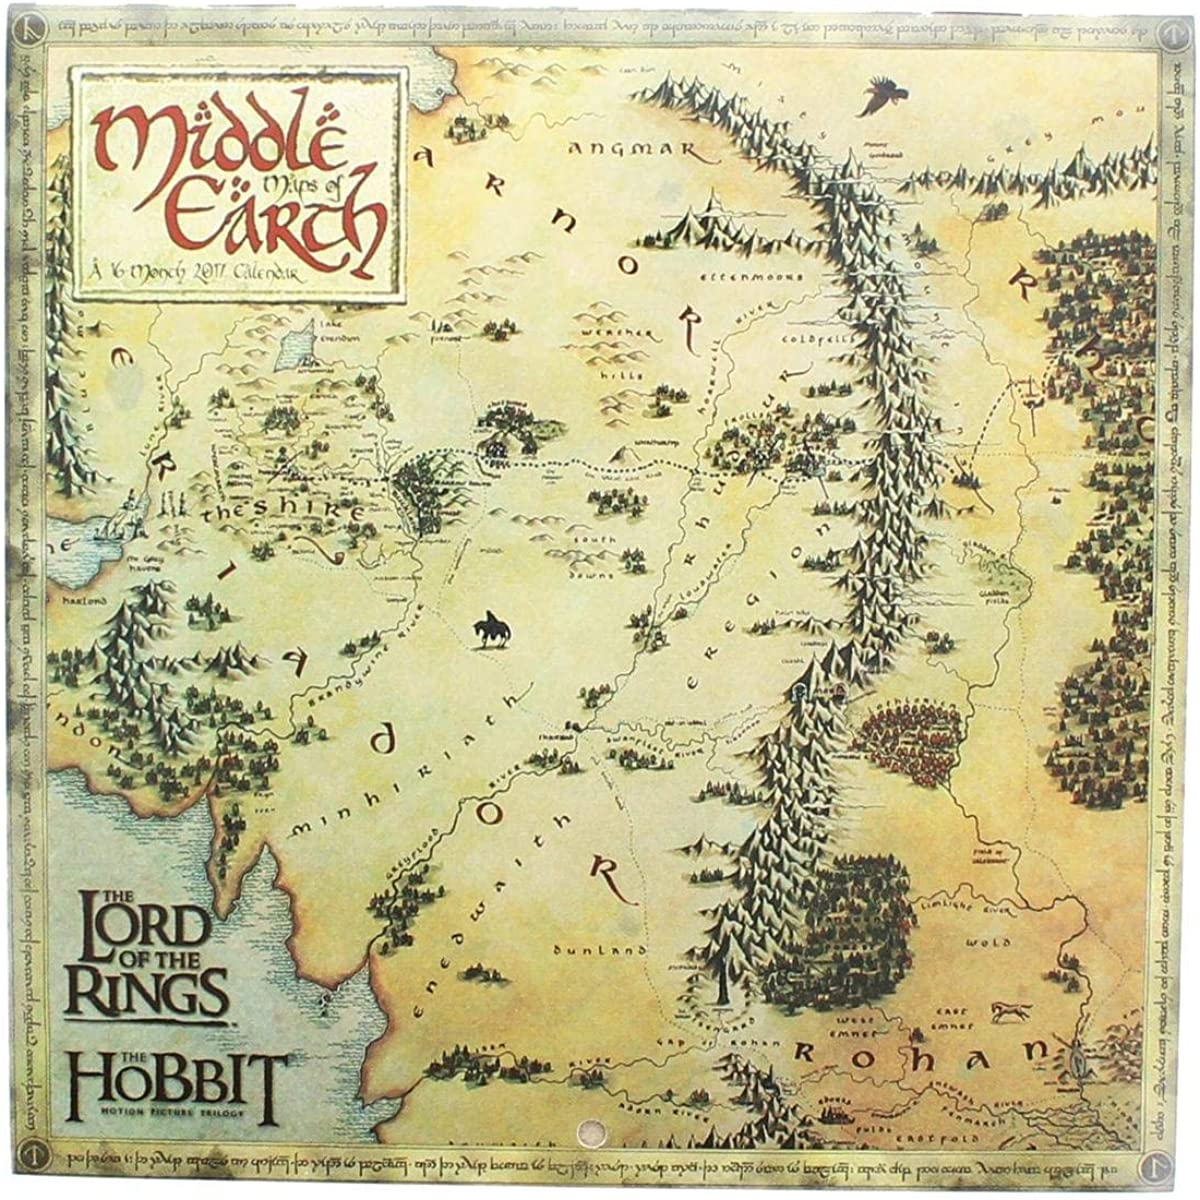 Lord Of The Rings Middle Earth Map Amazon.com: LORD OF THE RINGS   MIDDLE EARTH MAPS   2017 MINI WALL